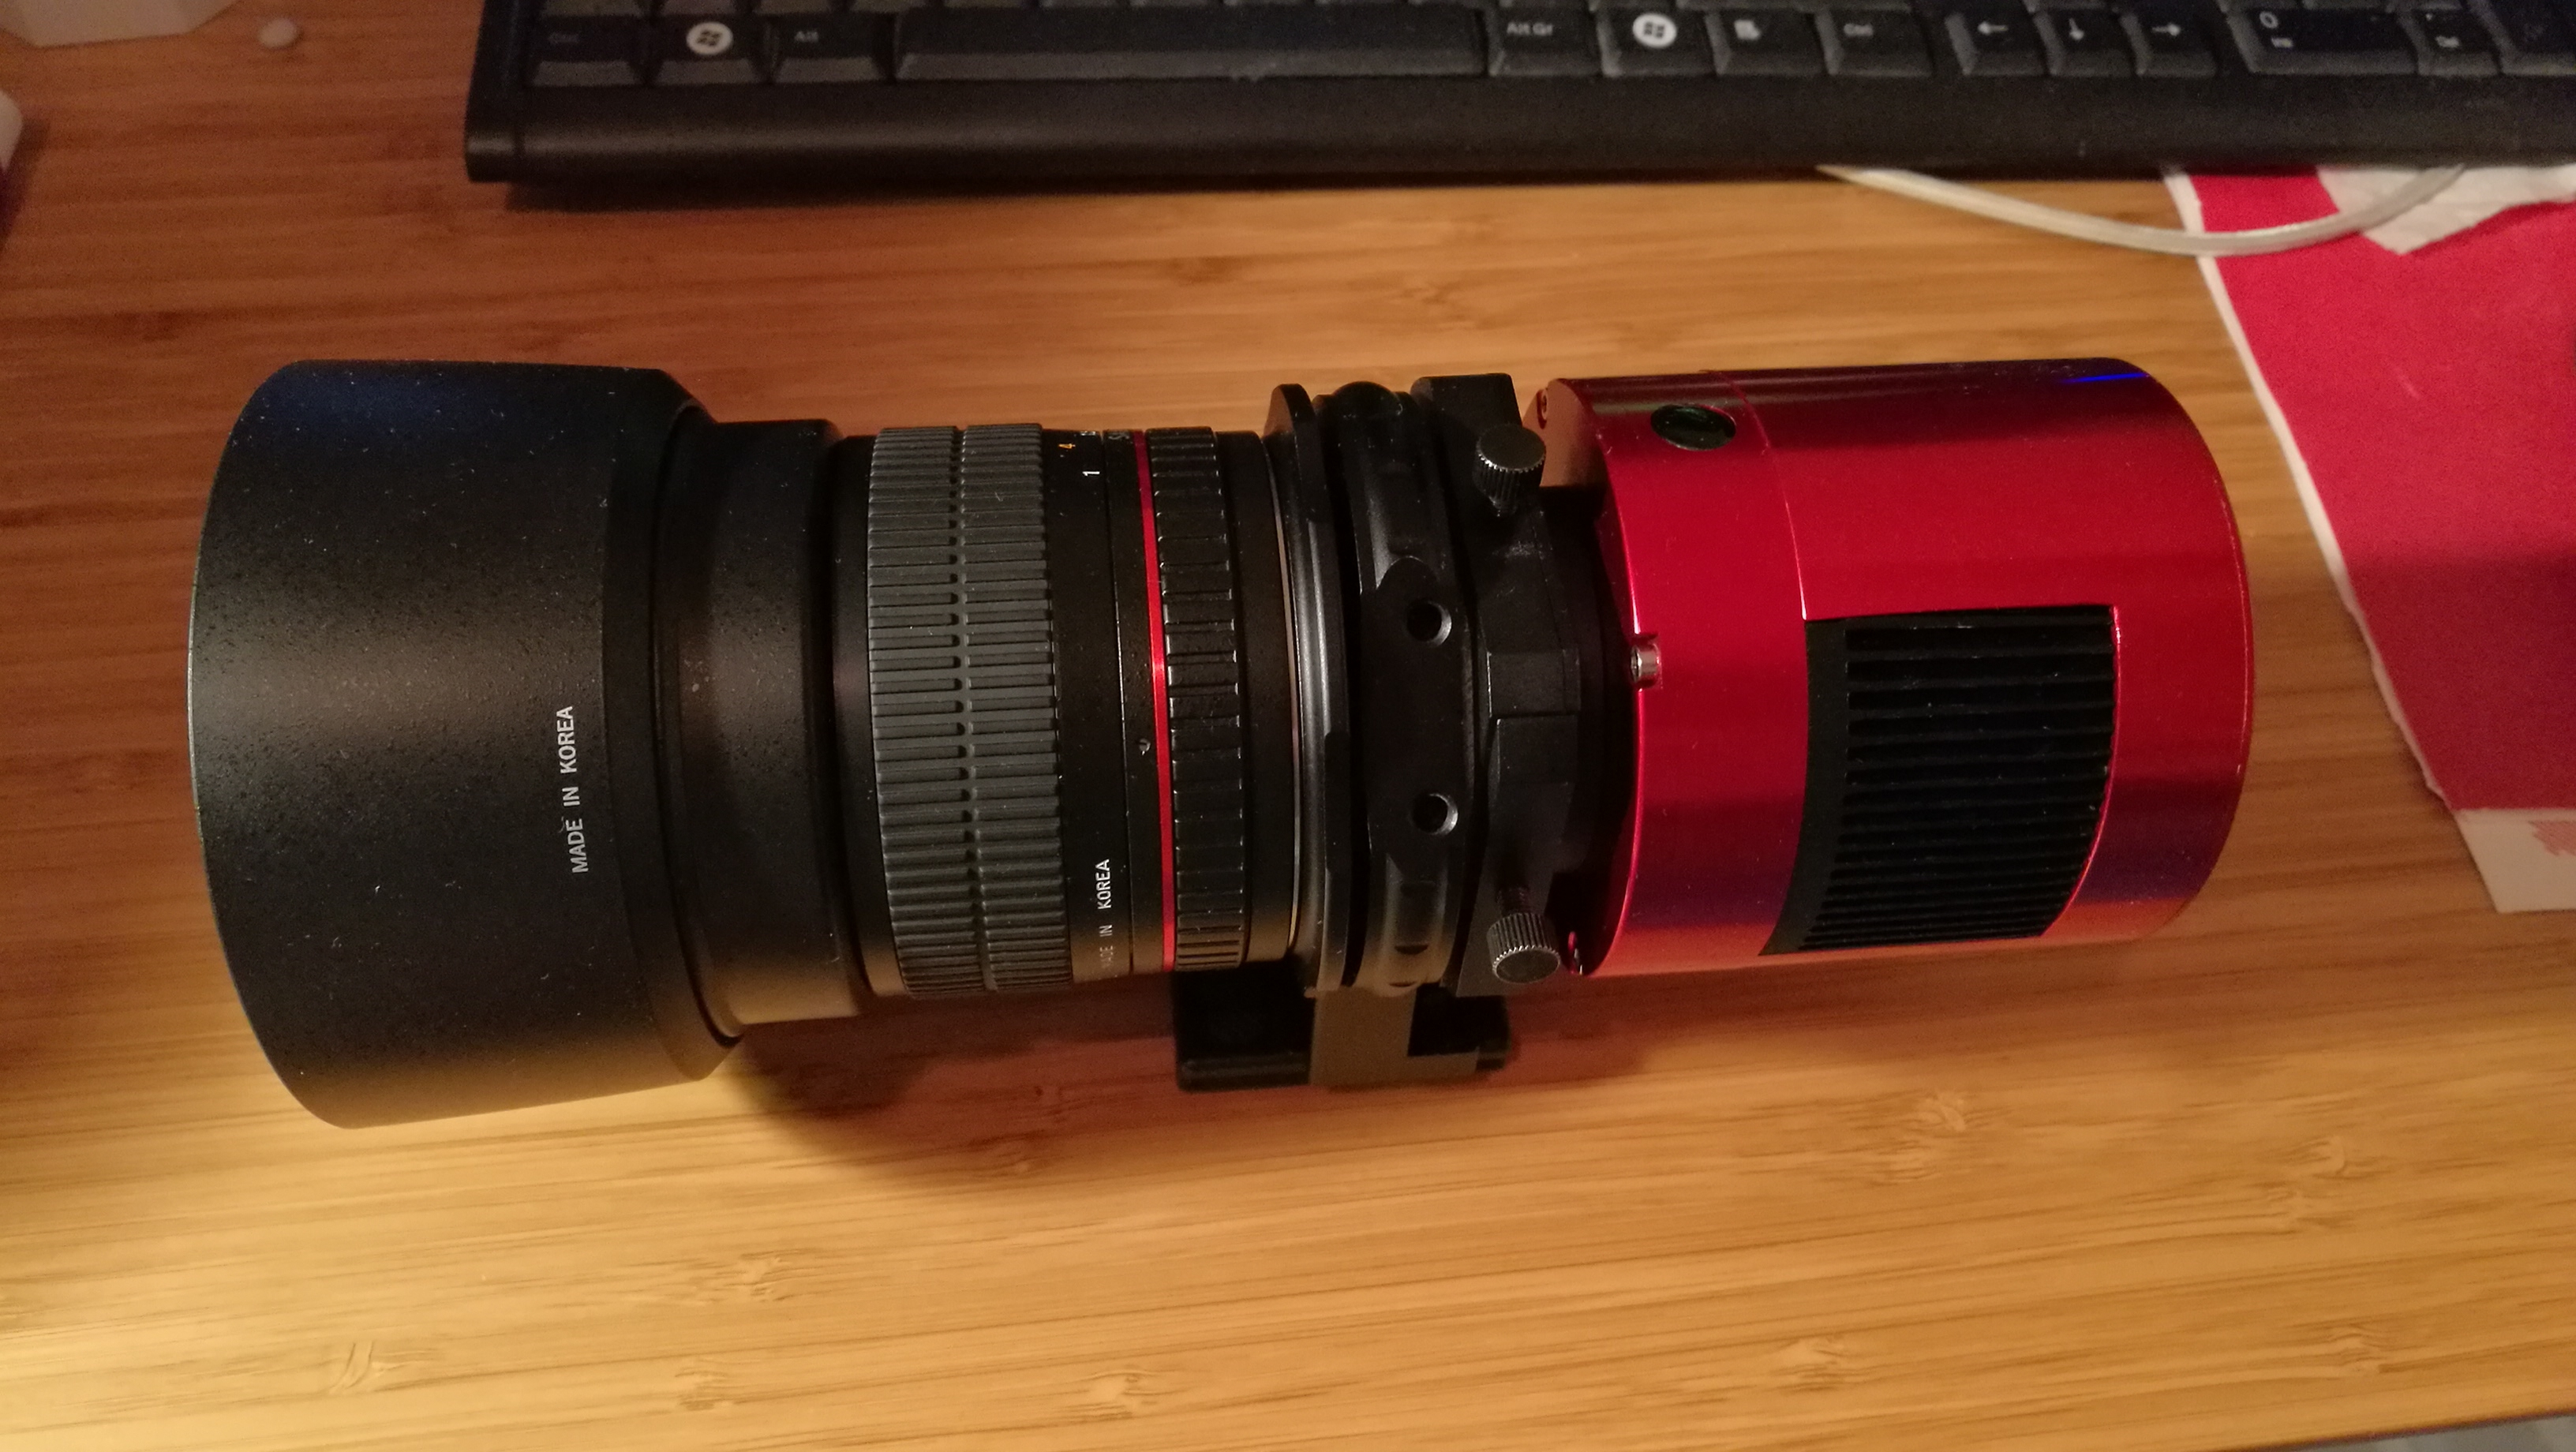 Samyang/Rokinon 135mm f/2 experiences - Imaging - Discussion